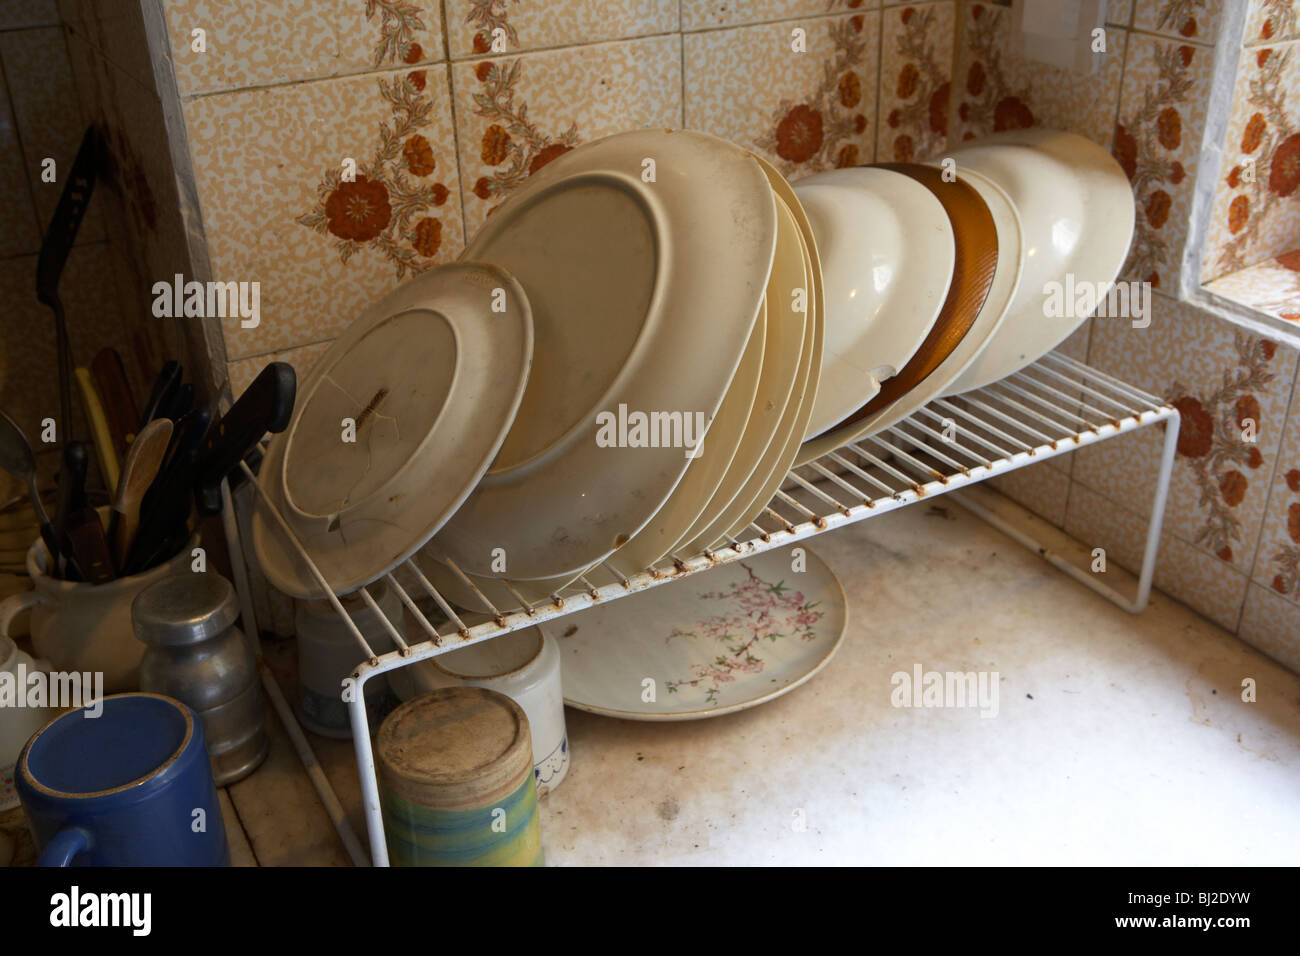 row of chipped cracked plates in a dirty run down kitchen in south america - Stock Image